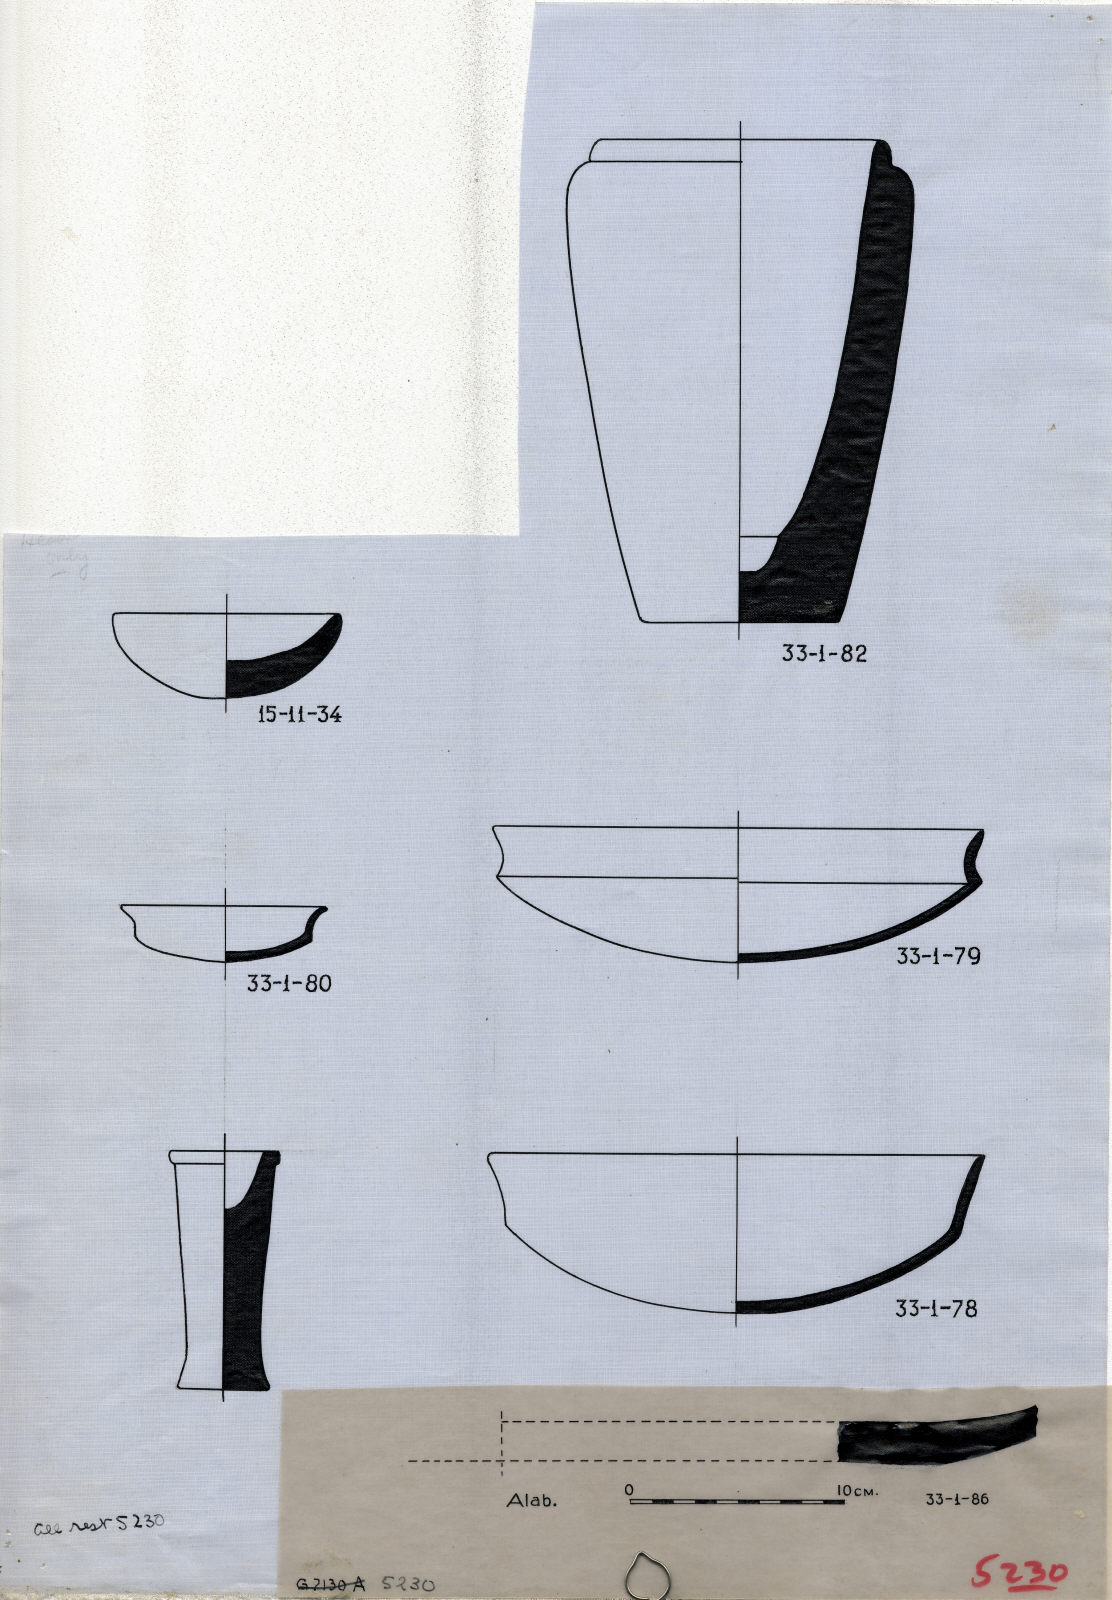 Drawings: G 5230: objects